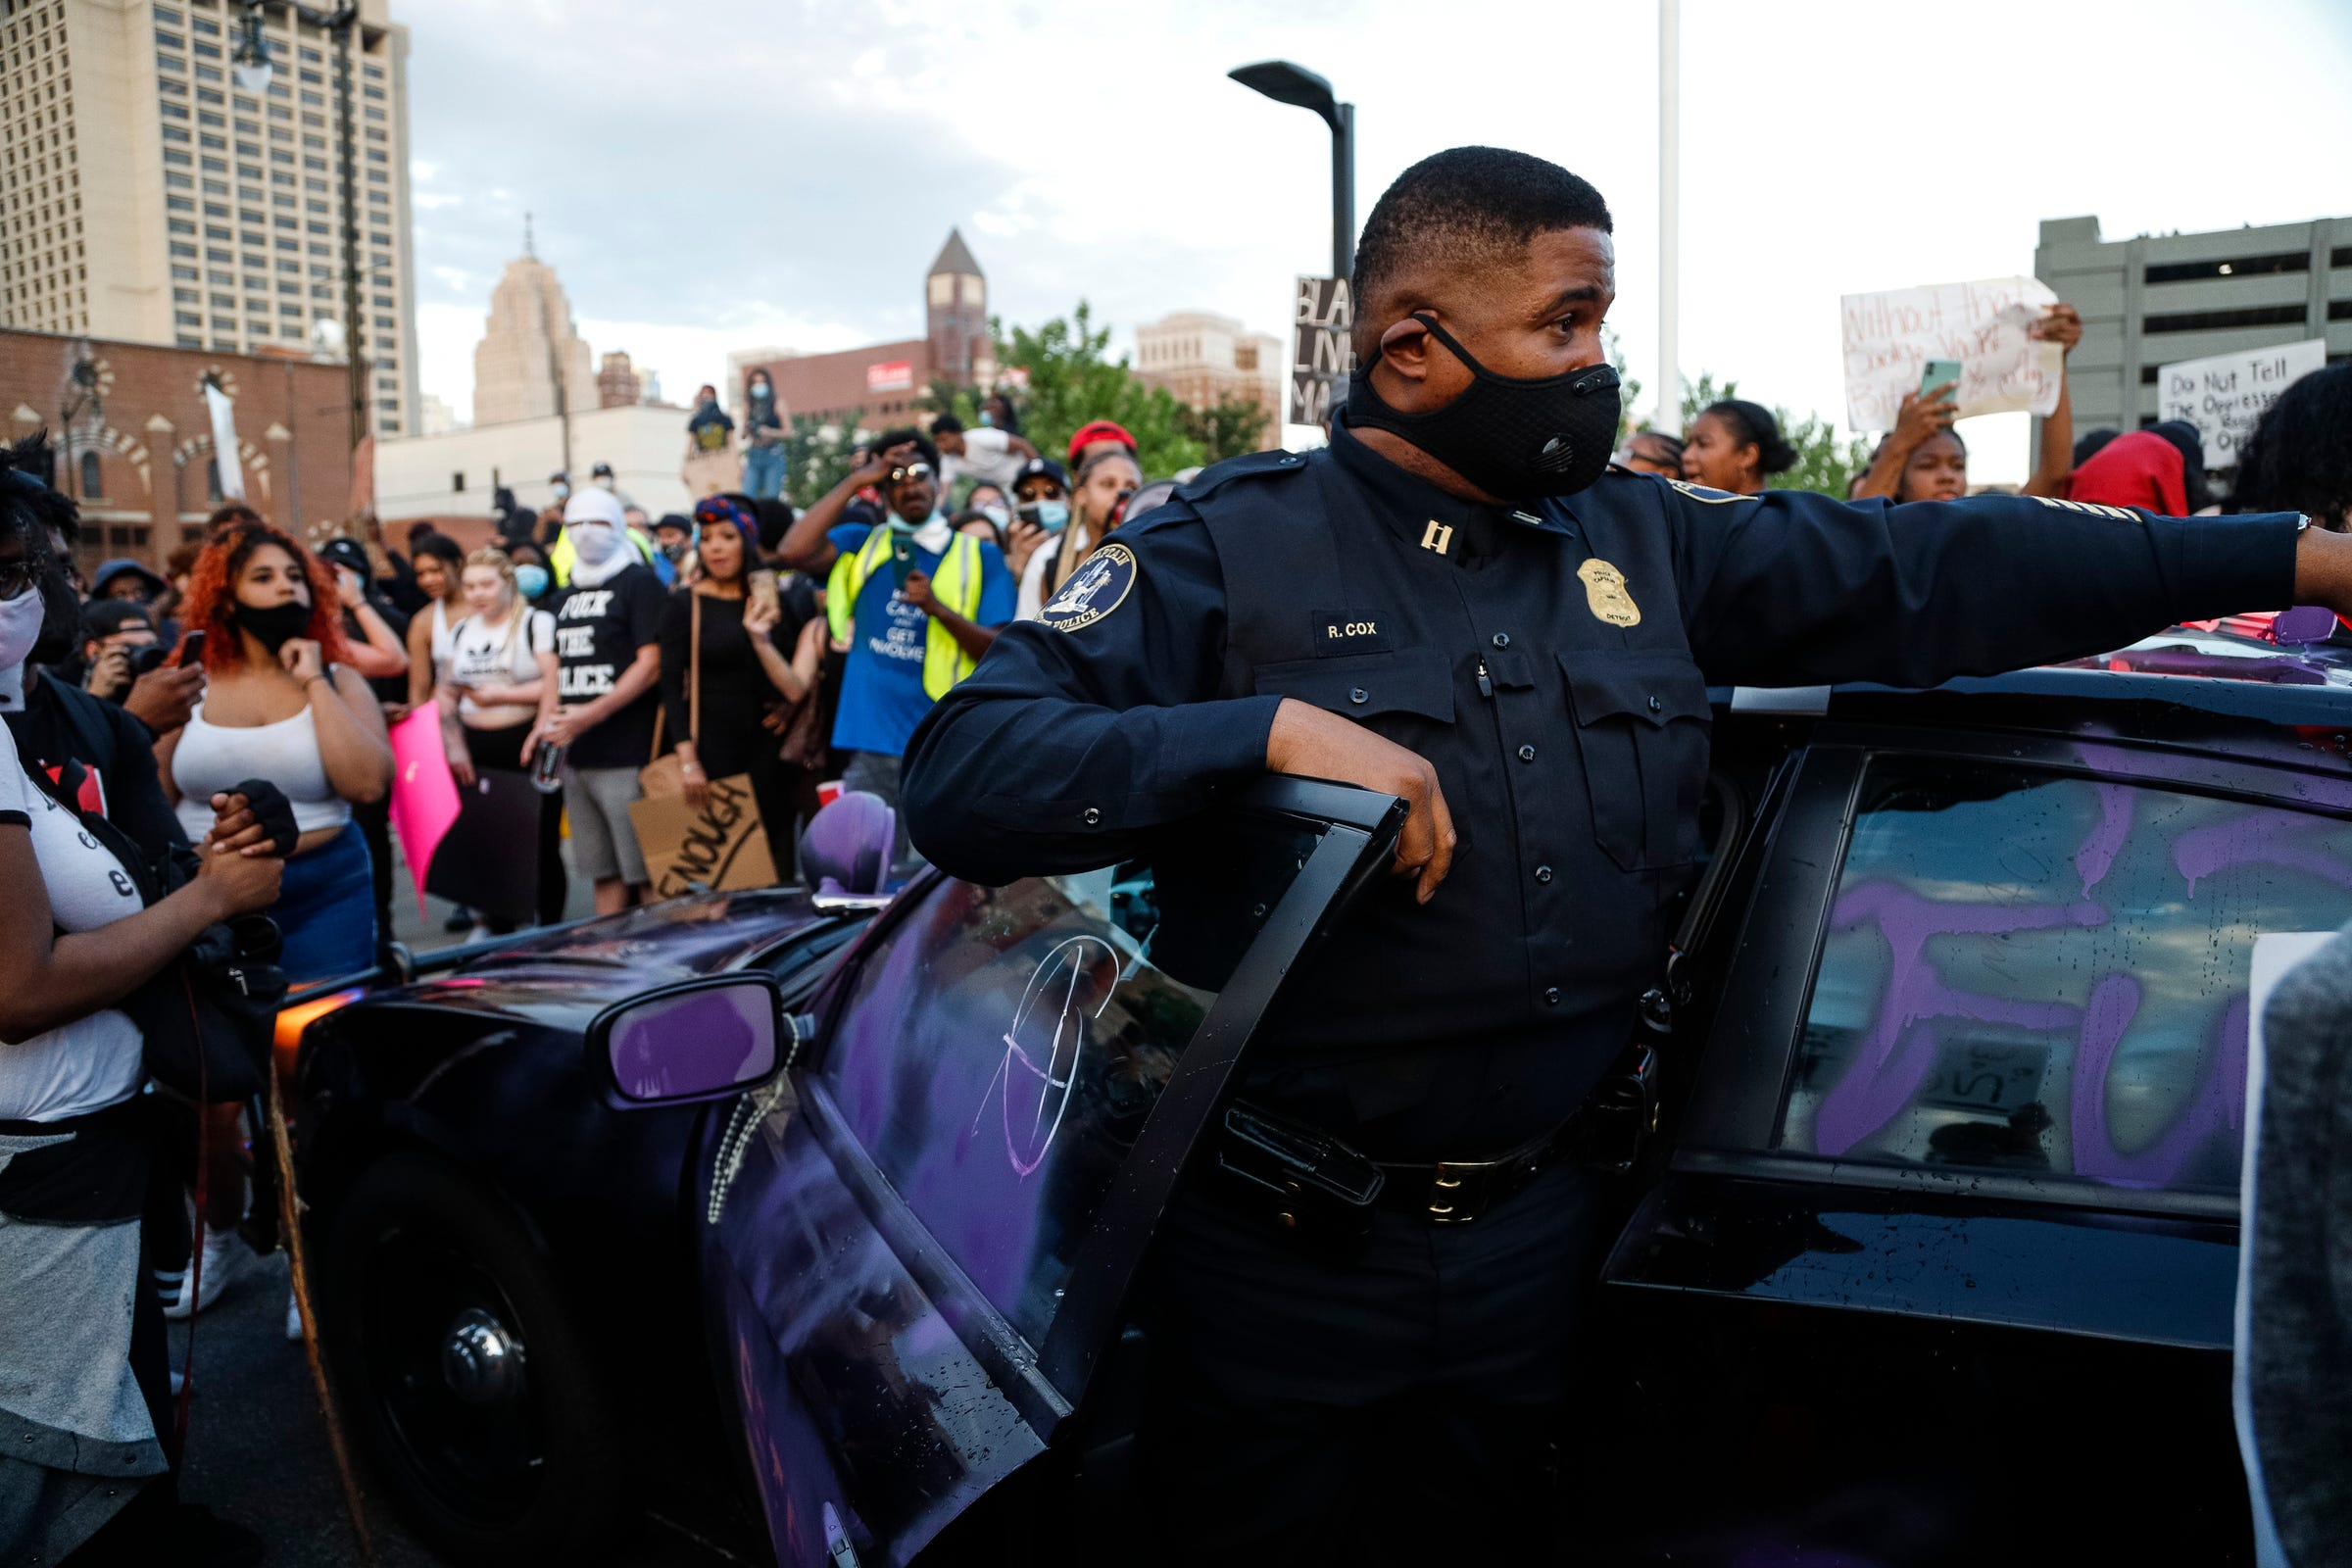 Protesters vandalized a Detroit Police vehicle in front of the Detroit Police headquarters as hundreds gathered and marched through Corktown and downtown to protest police brutality and the death of George Floyd, Friday, May 29, 2020.